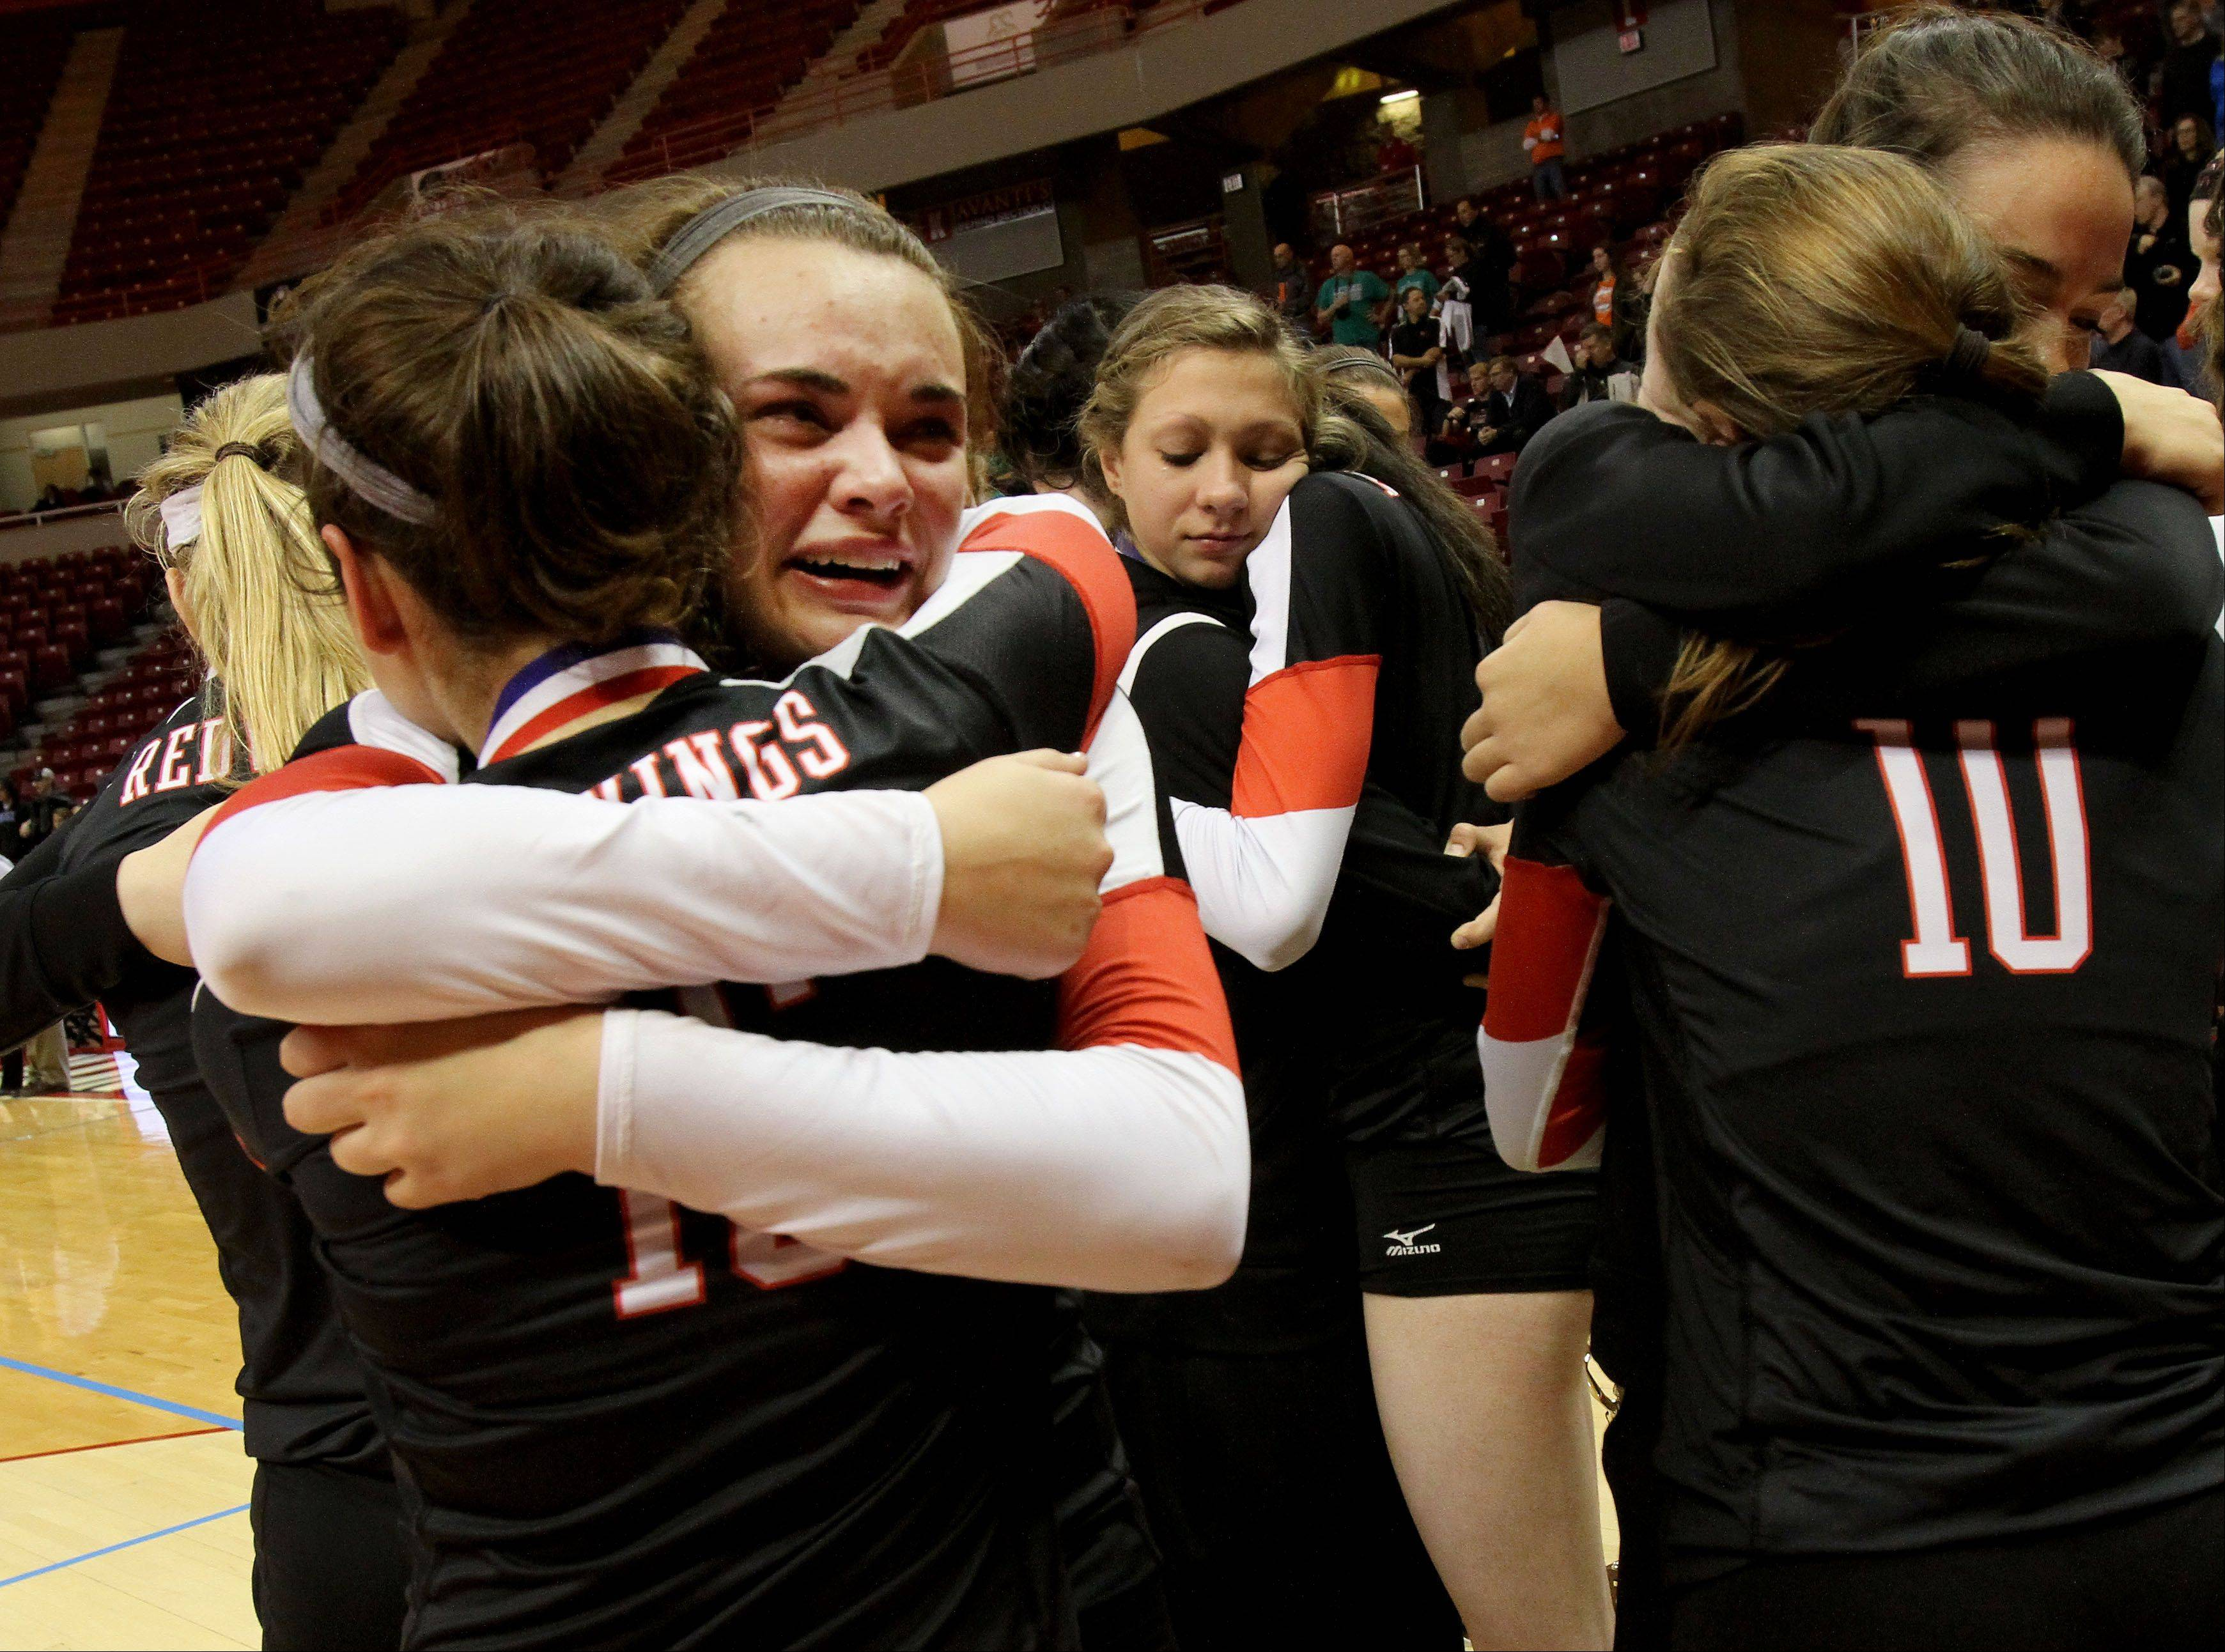 Benet players console each other after their loss to Mother McAuley in the Class 4A championship girls volleyball match on Saturday in Normal.